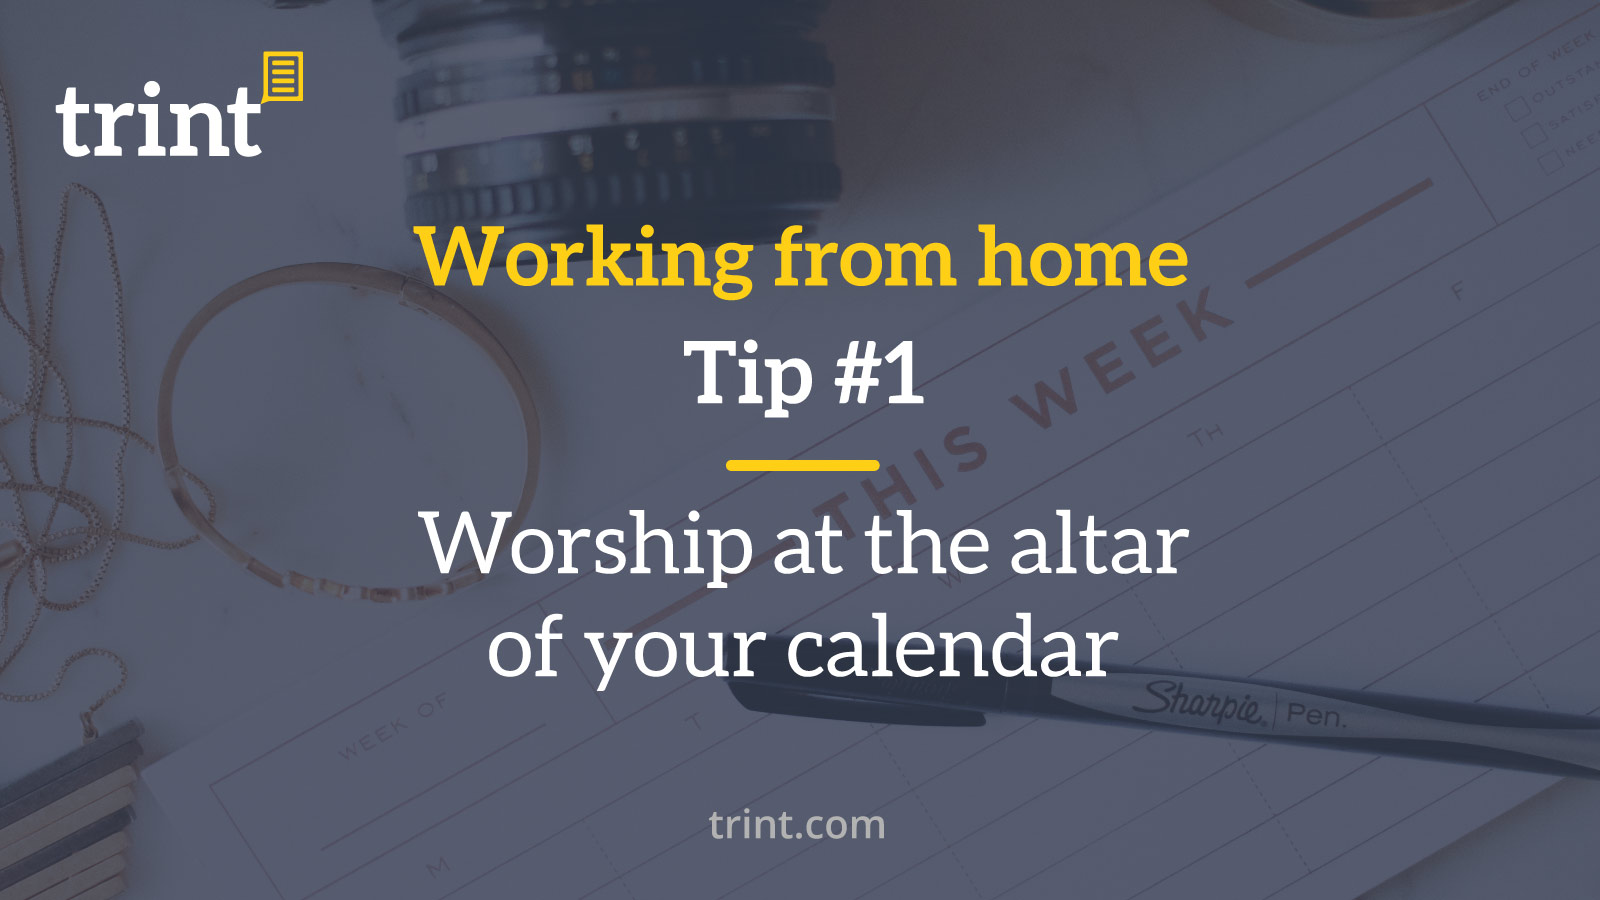 Trint WFH Tip 1 Worship at the altar of your calendar